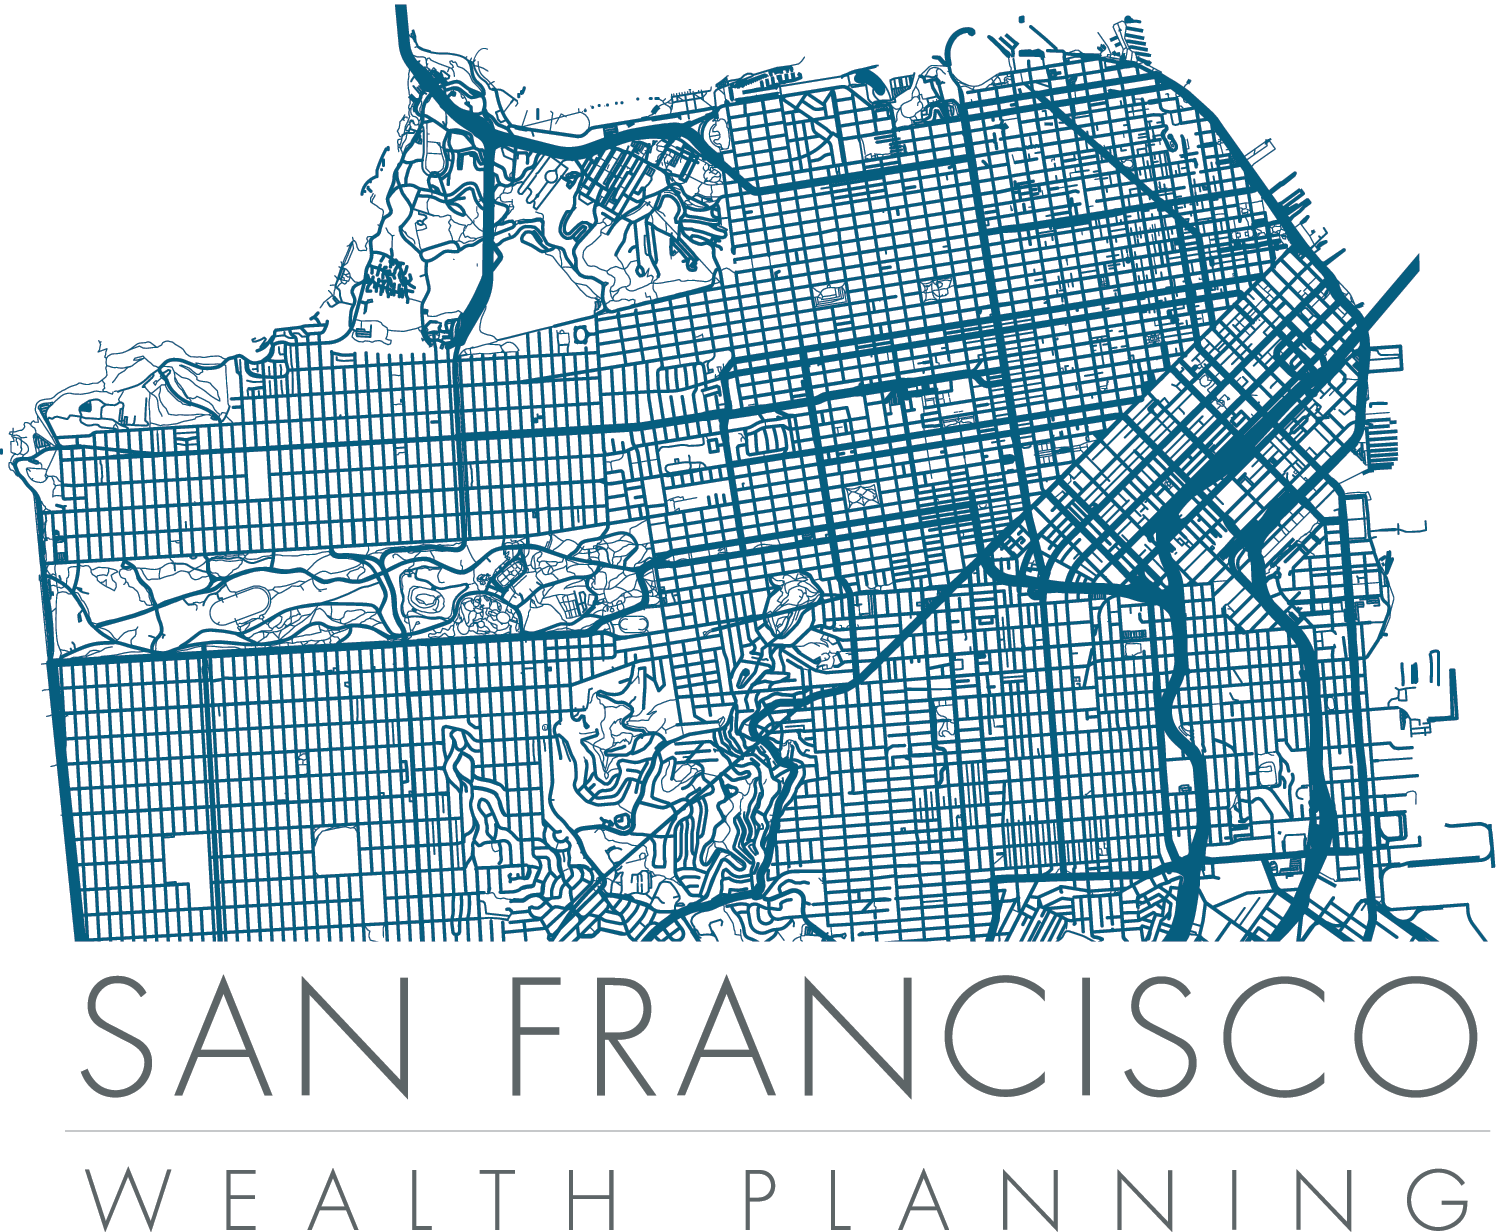 San Francisco Wealth Planning